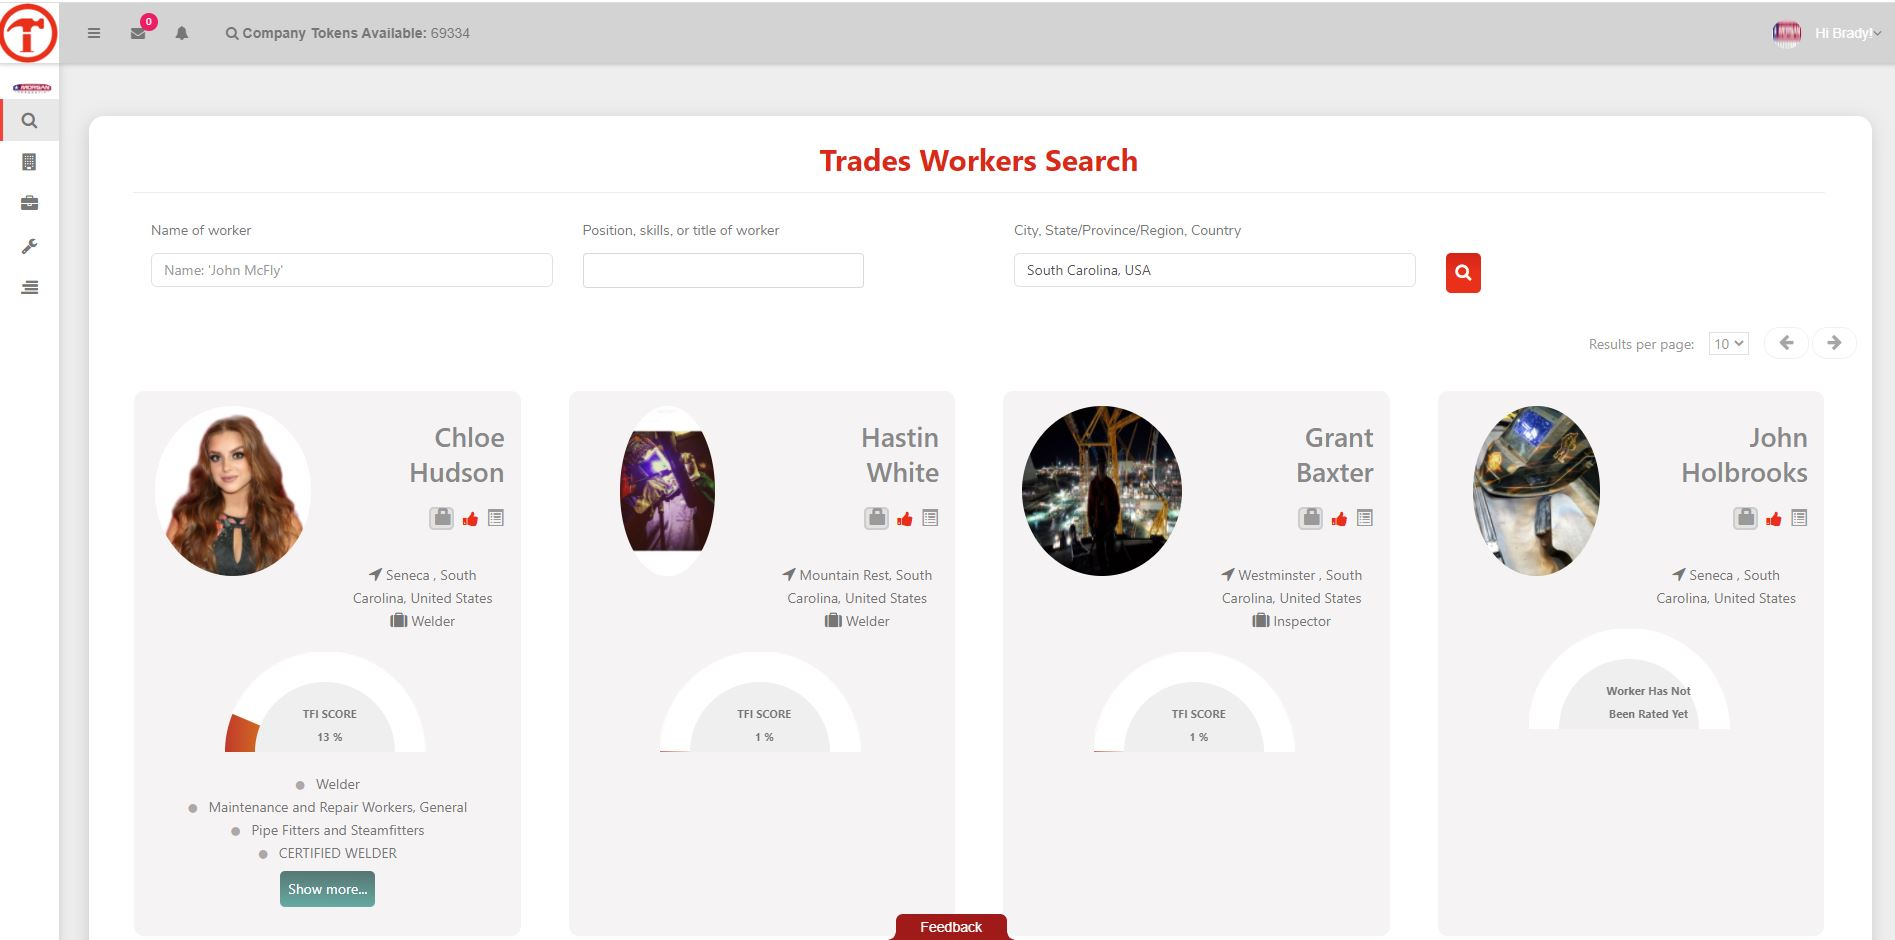 Search for skilled workers in our database of tens of thousands.